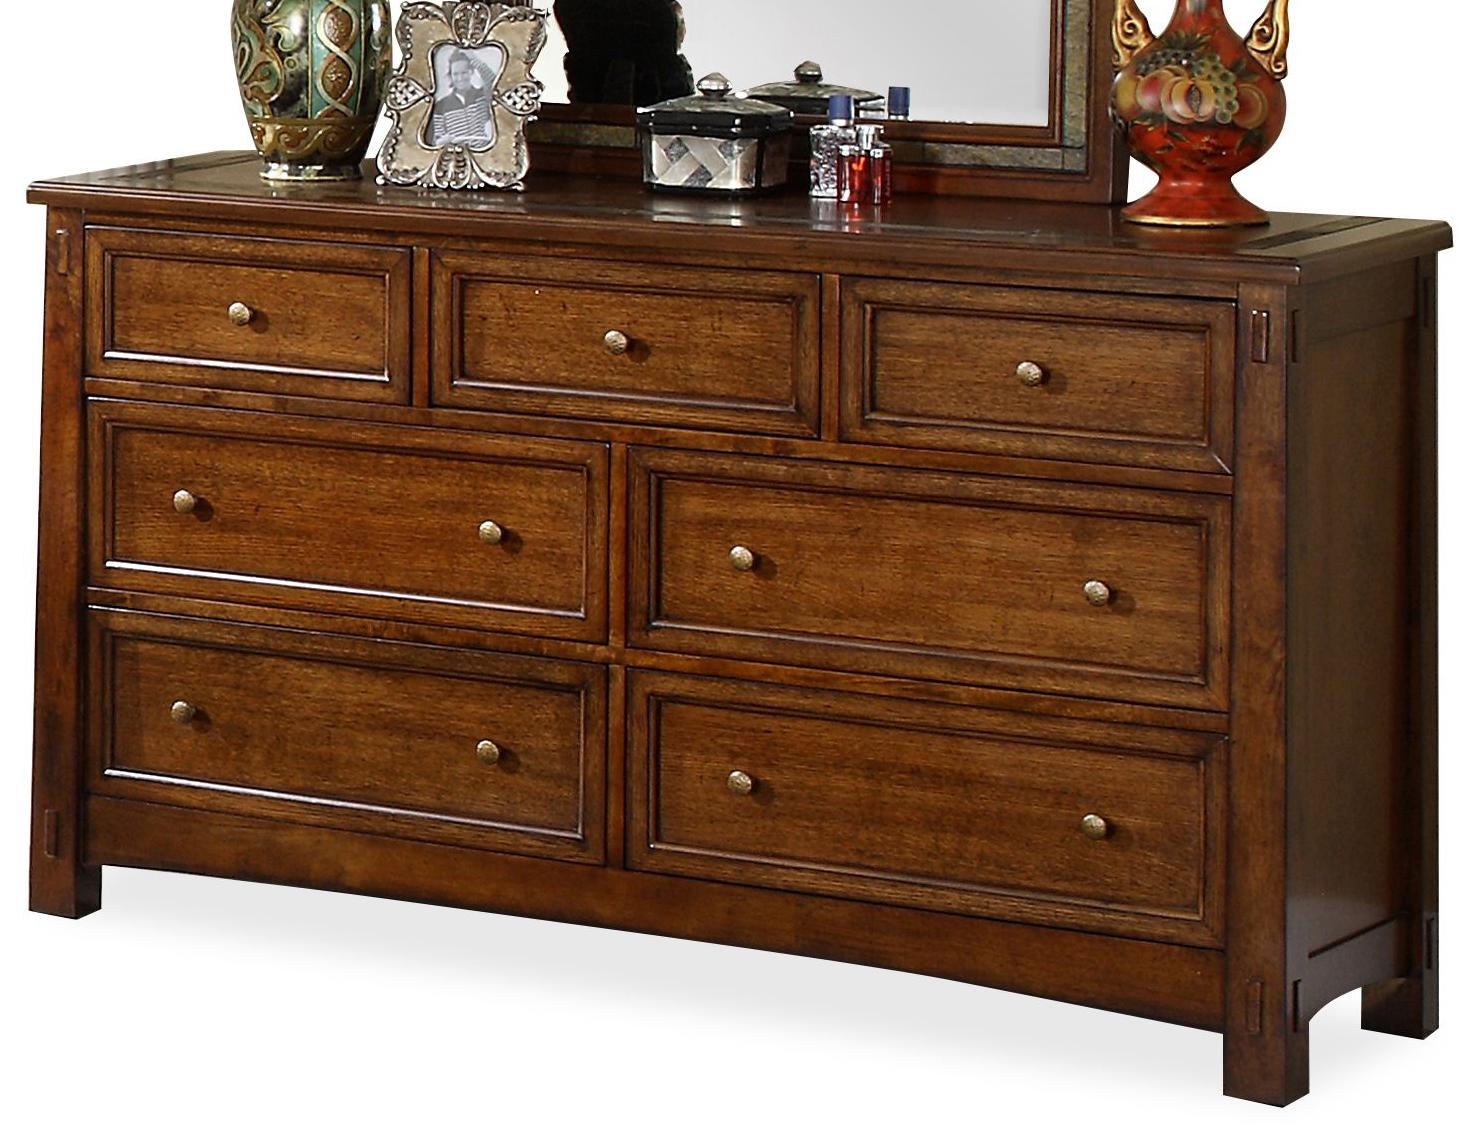 Riverside Furniture Craftsman Home Dresser - Item Number: 2960